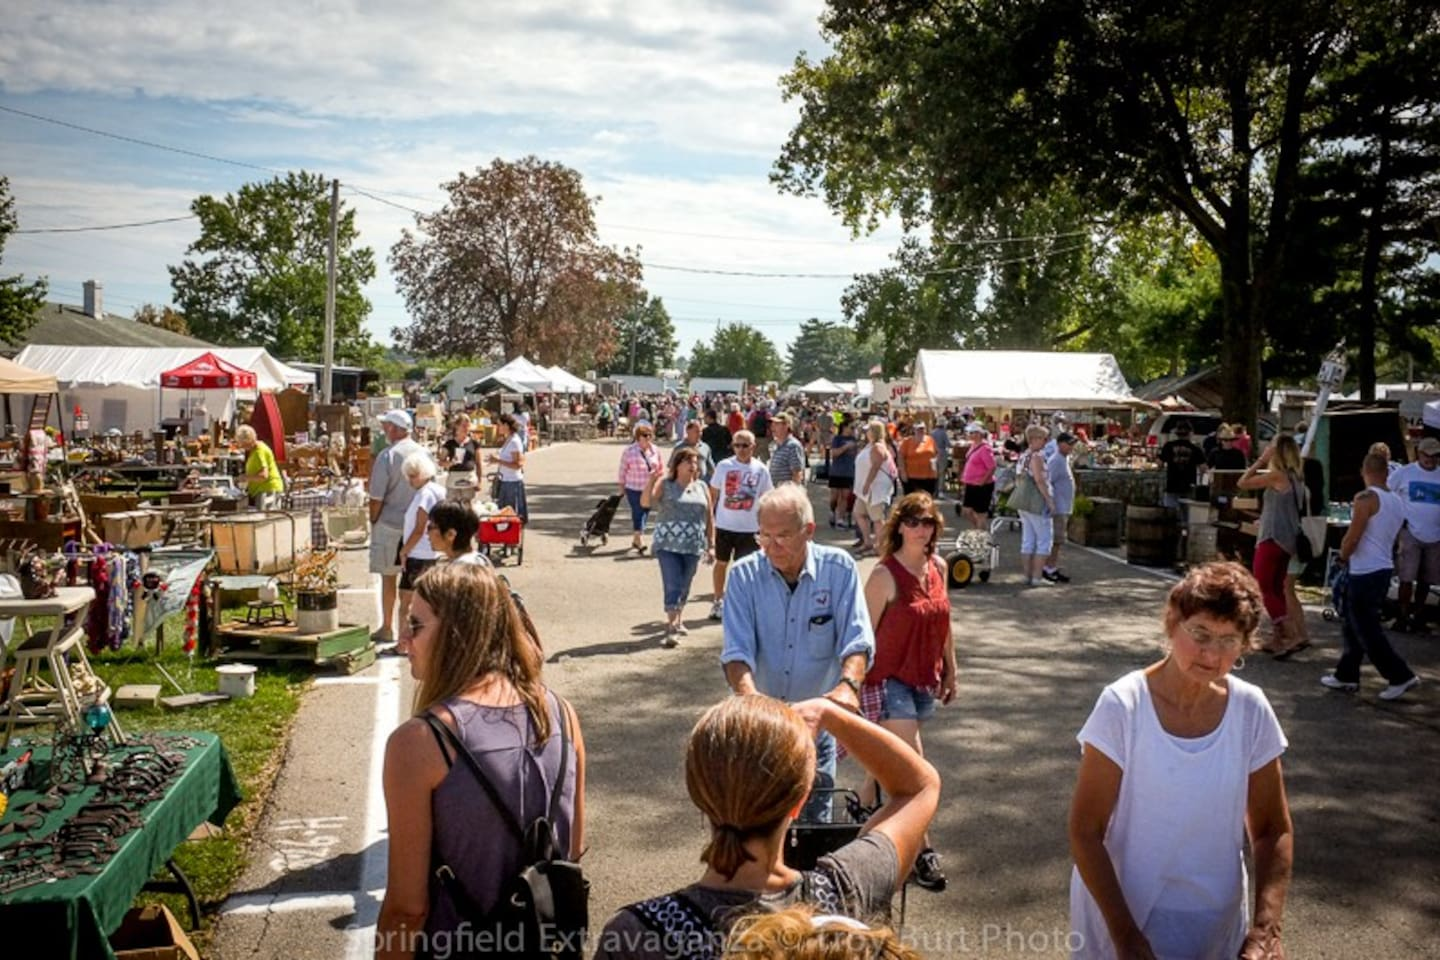 Springfield Antique Show & Flea Market, 15 minutes from our house. June 16-17 , August 18-19, September 14-16 (Extravaganza), October 20-21, November 17-18